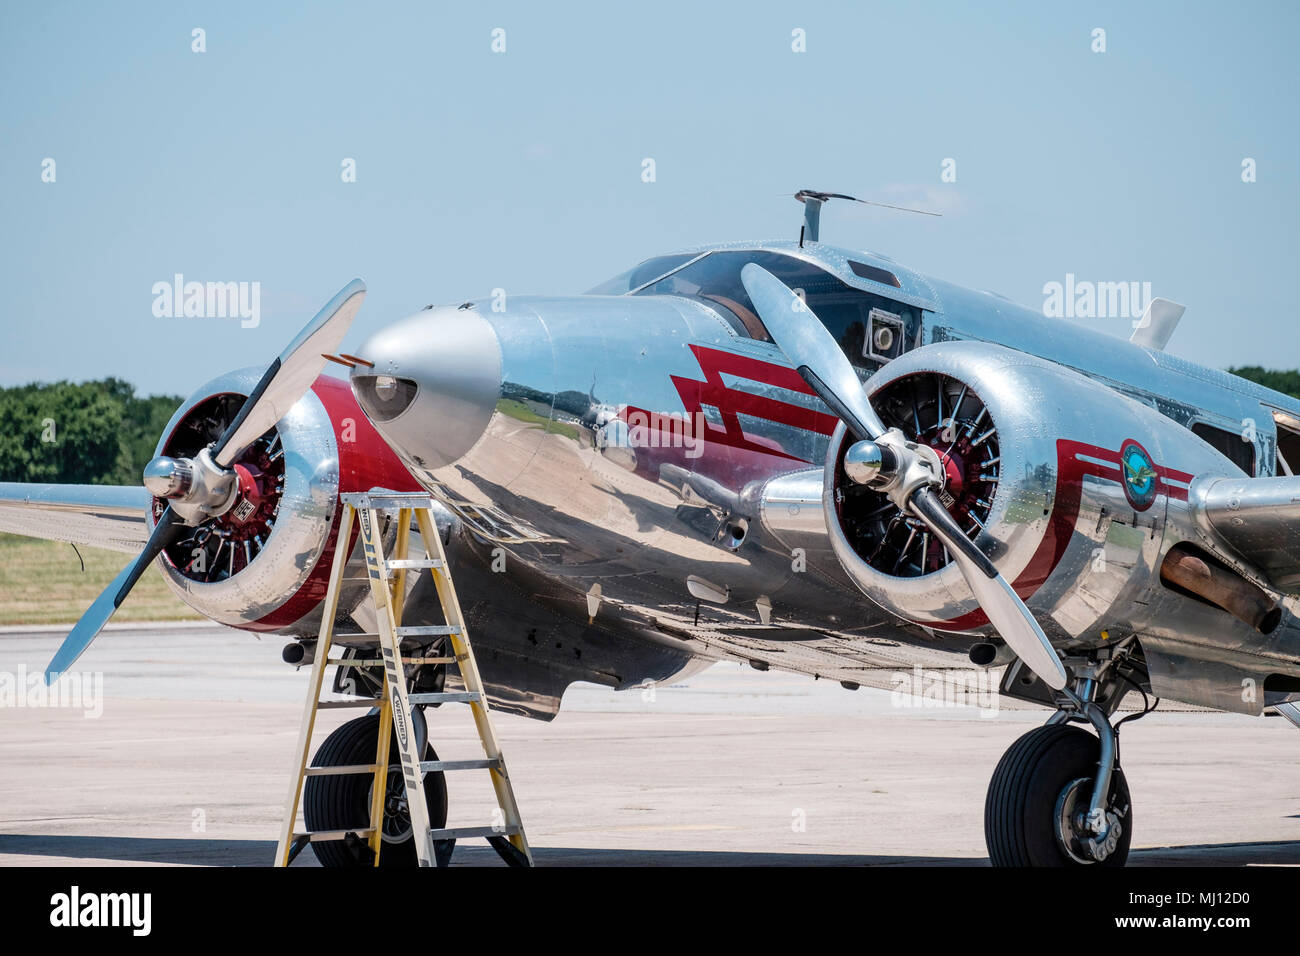 Beechcraft C-45H twin-engine aircraft. One verrsion of the Beech 18 or 'Twin-Beech' designed in the 1930s for military, civilian & commercial  use - Stock Image